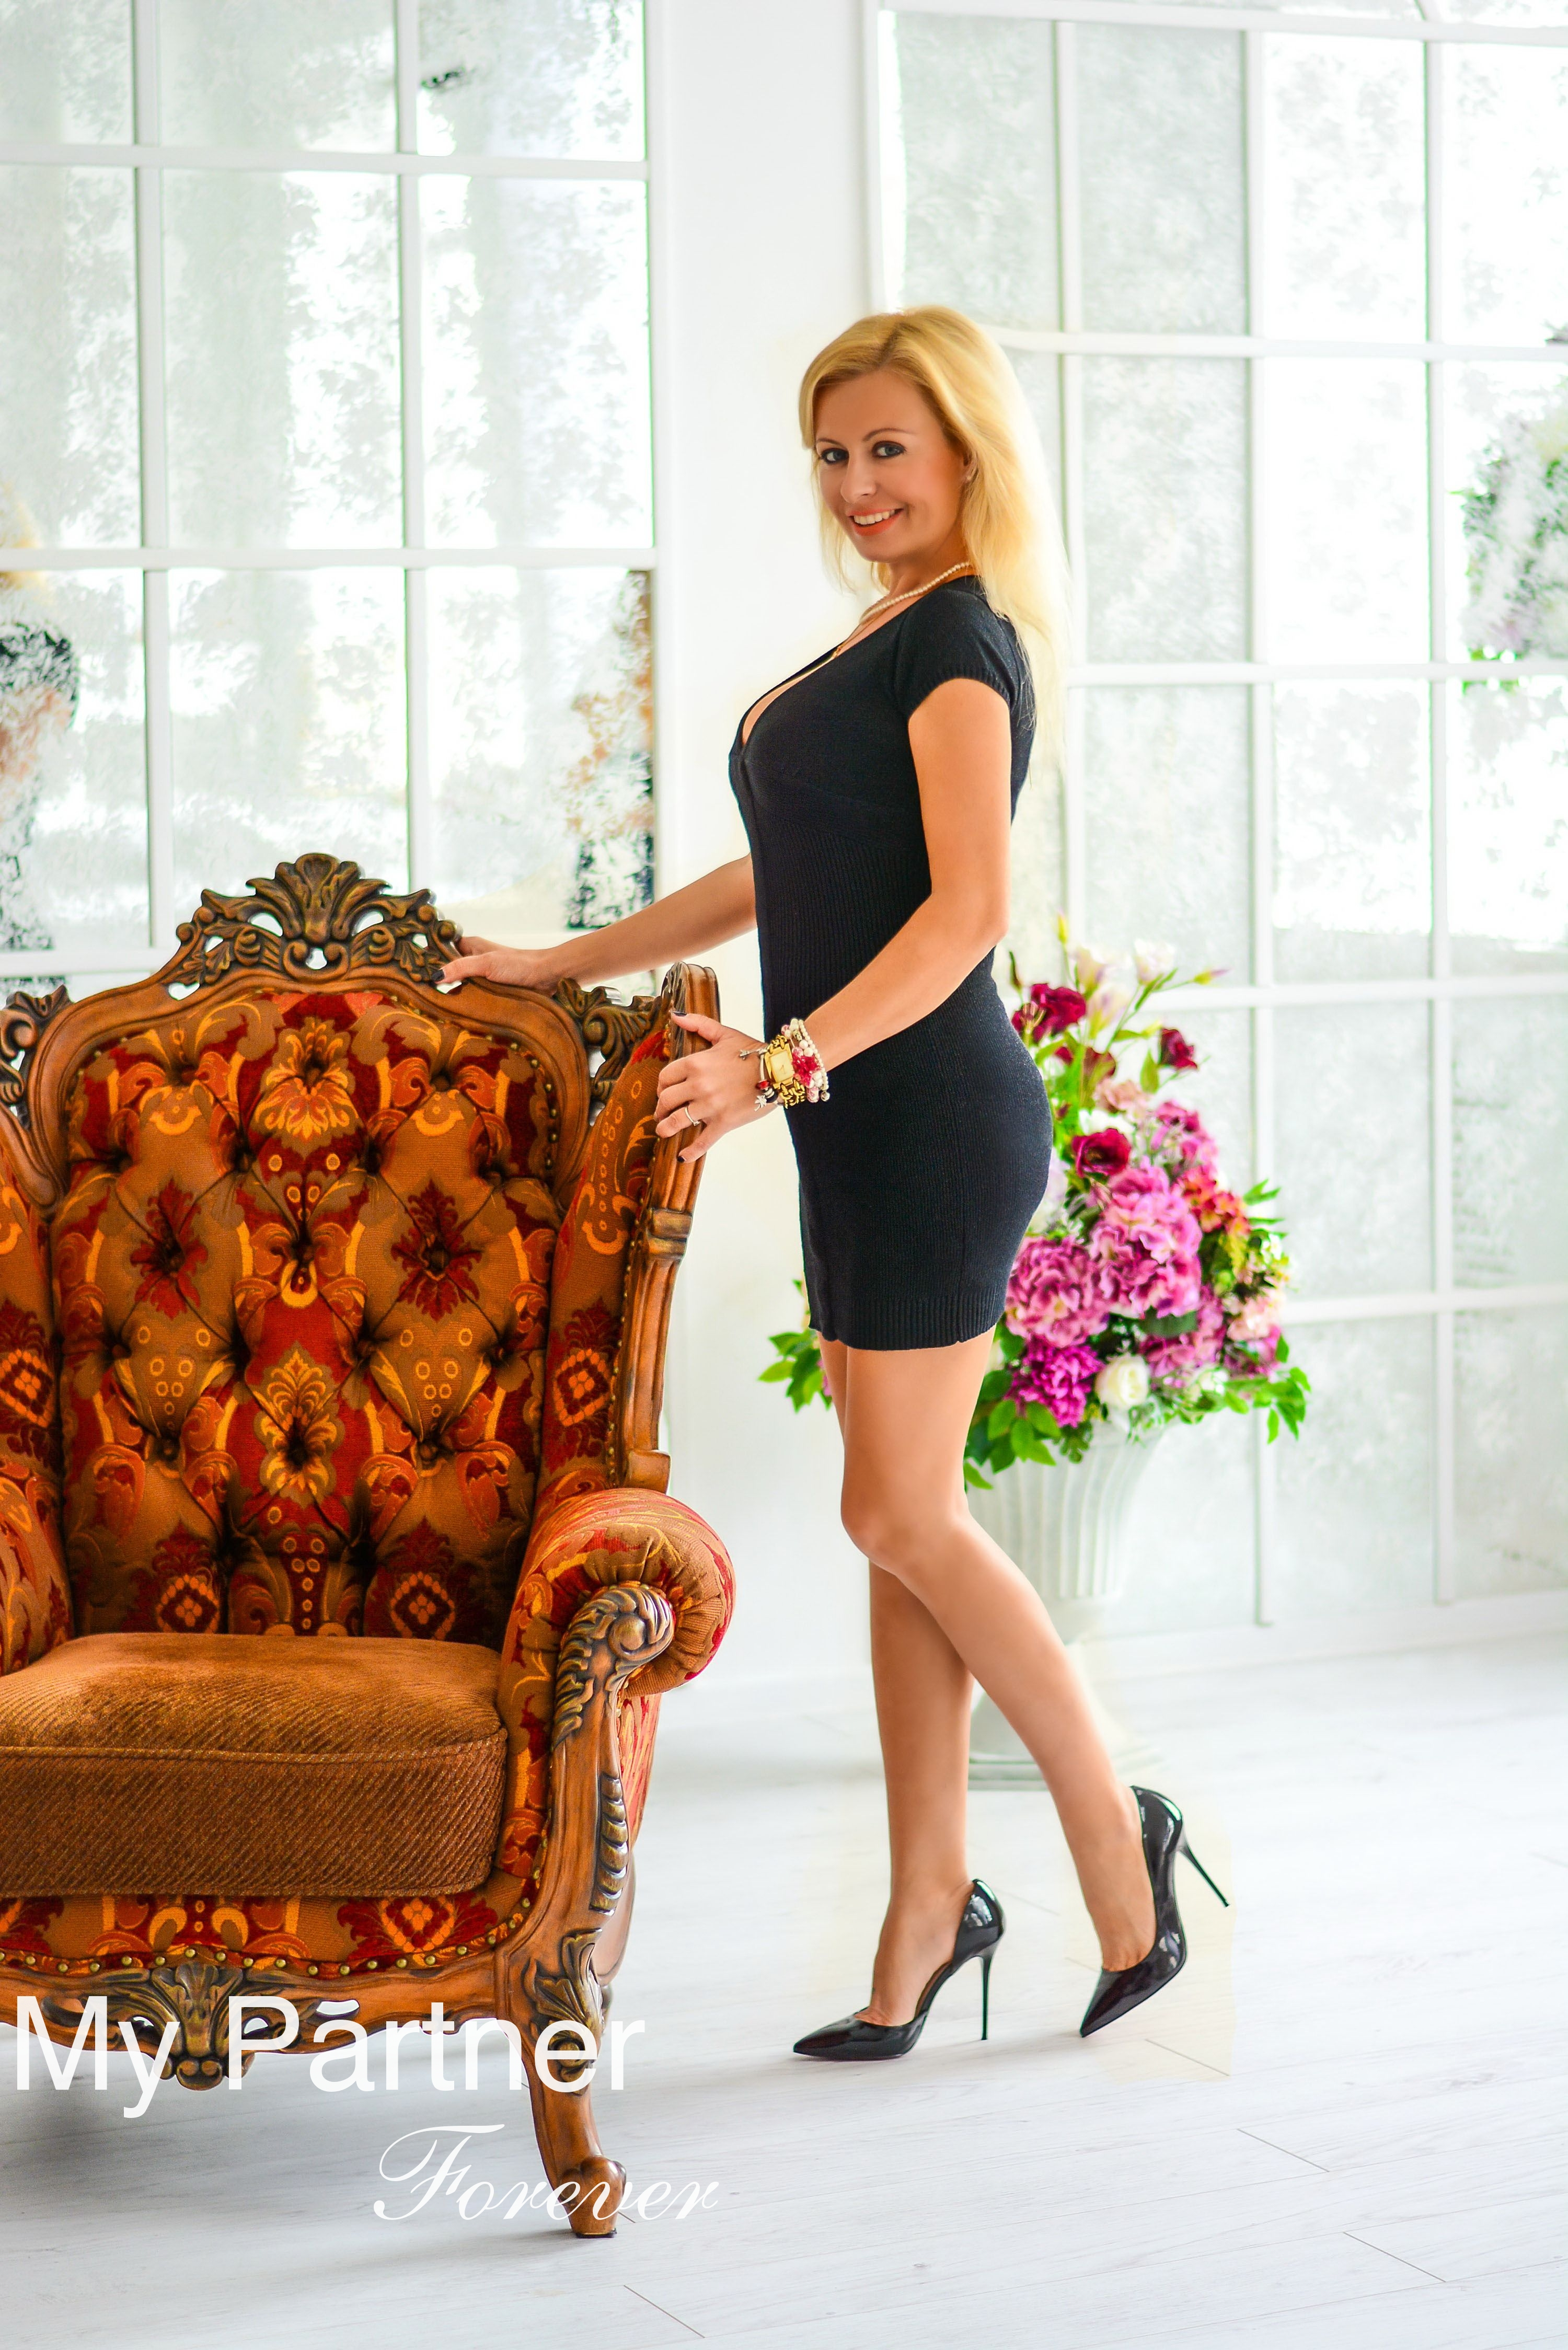 Online Dating with Single Ukrainian Girl Yana from Kharkov, Ukraine